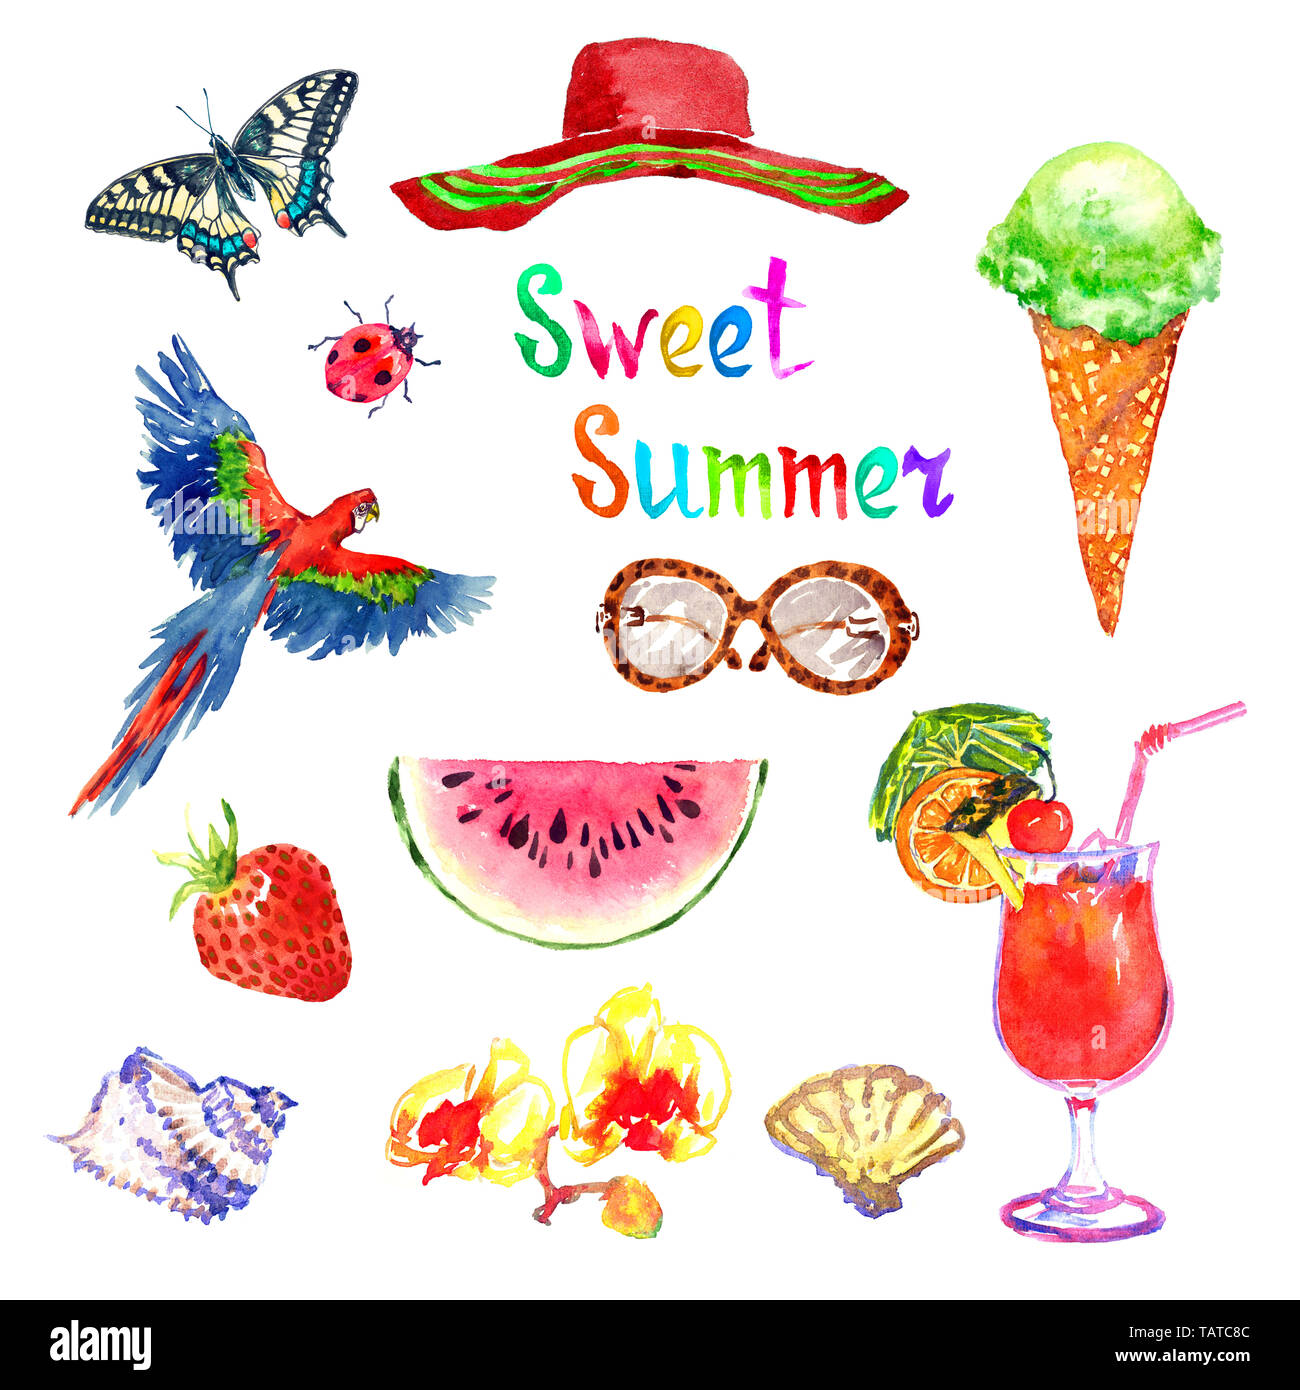 Sweet summer watercolor isolated illustration pink set, Papilio Machaon, hat, glasses, strawberry, ice cream, Scarlet macaw parrot, watermelon, shells - Stock Image